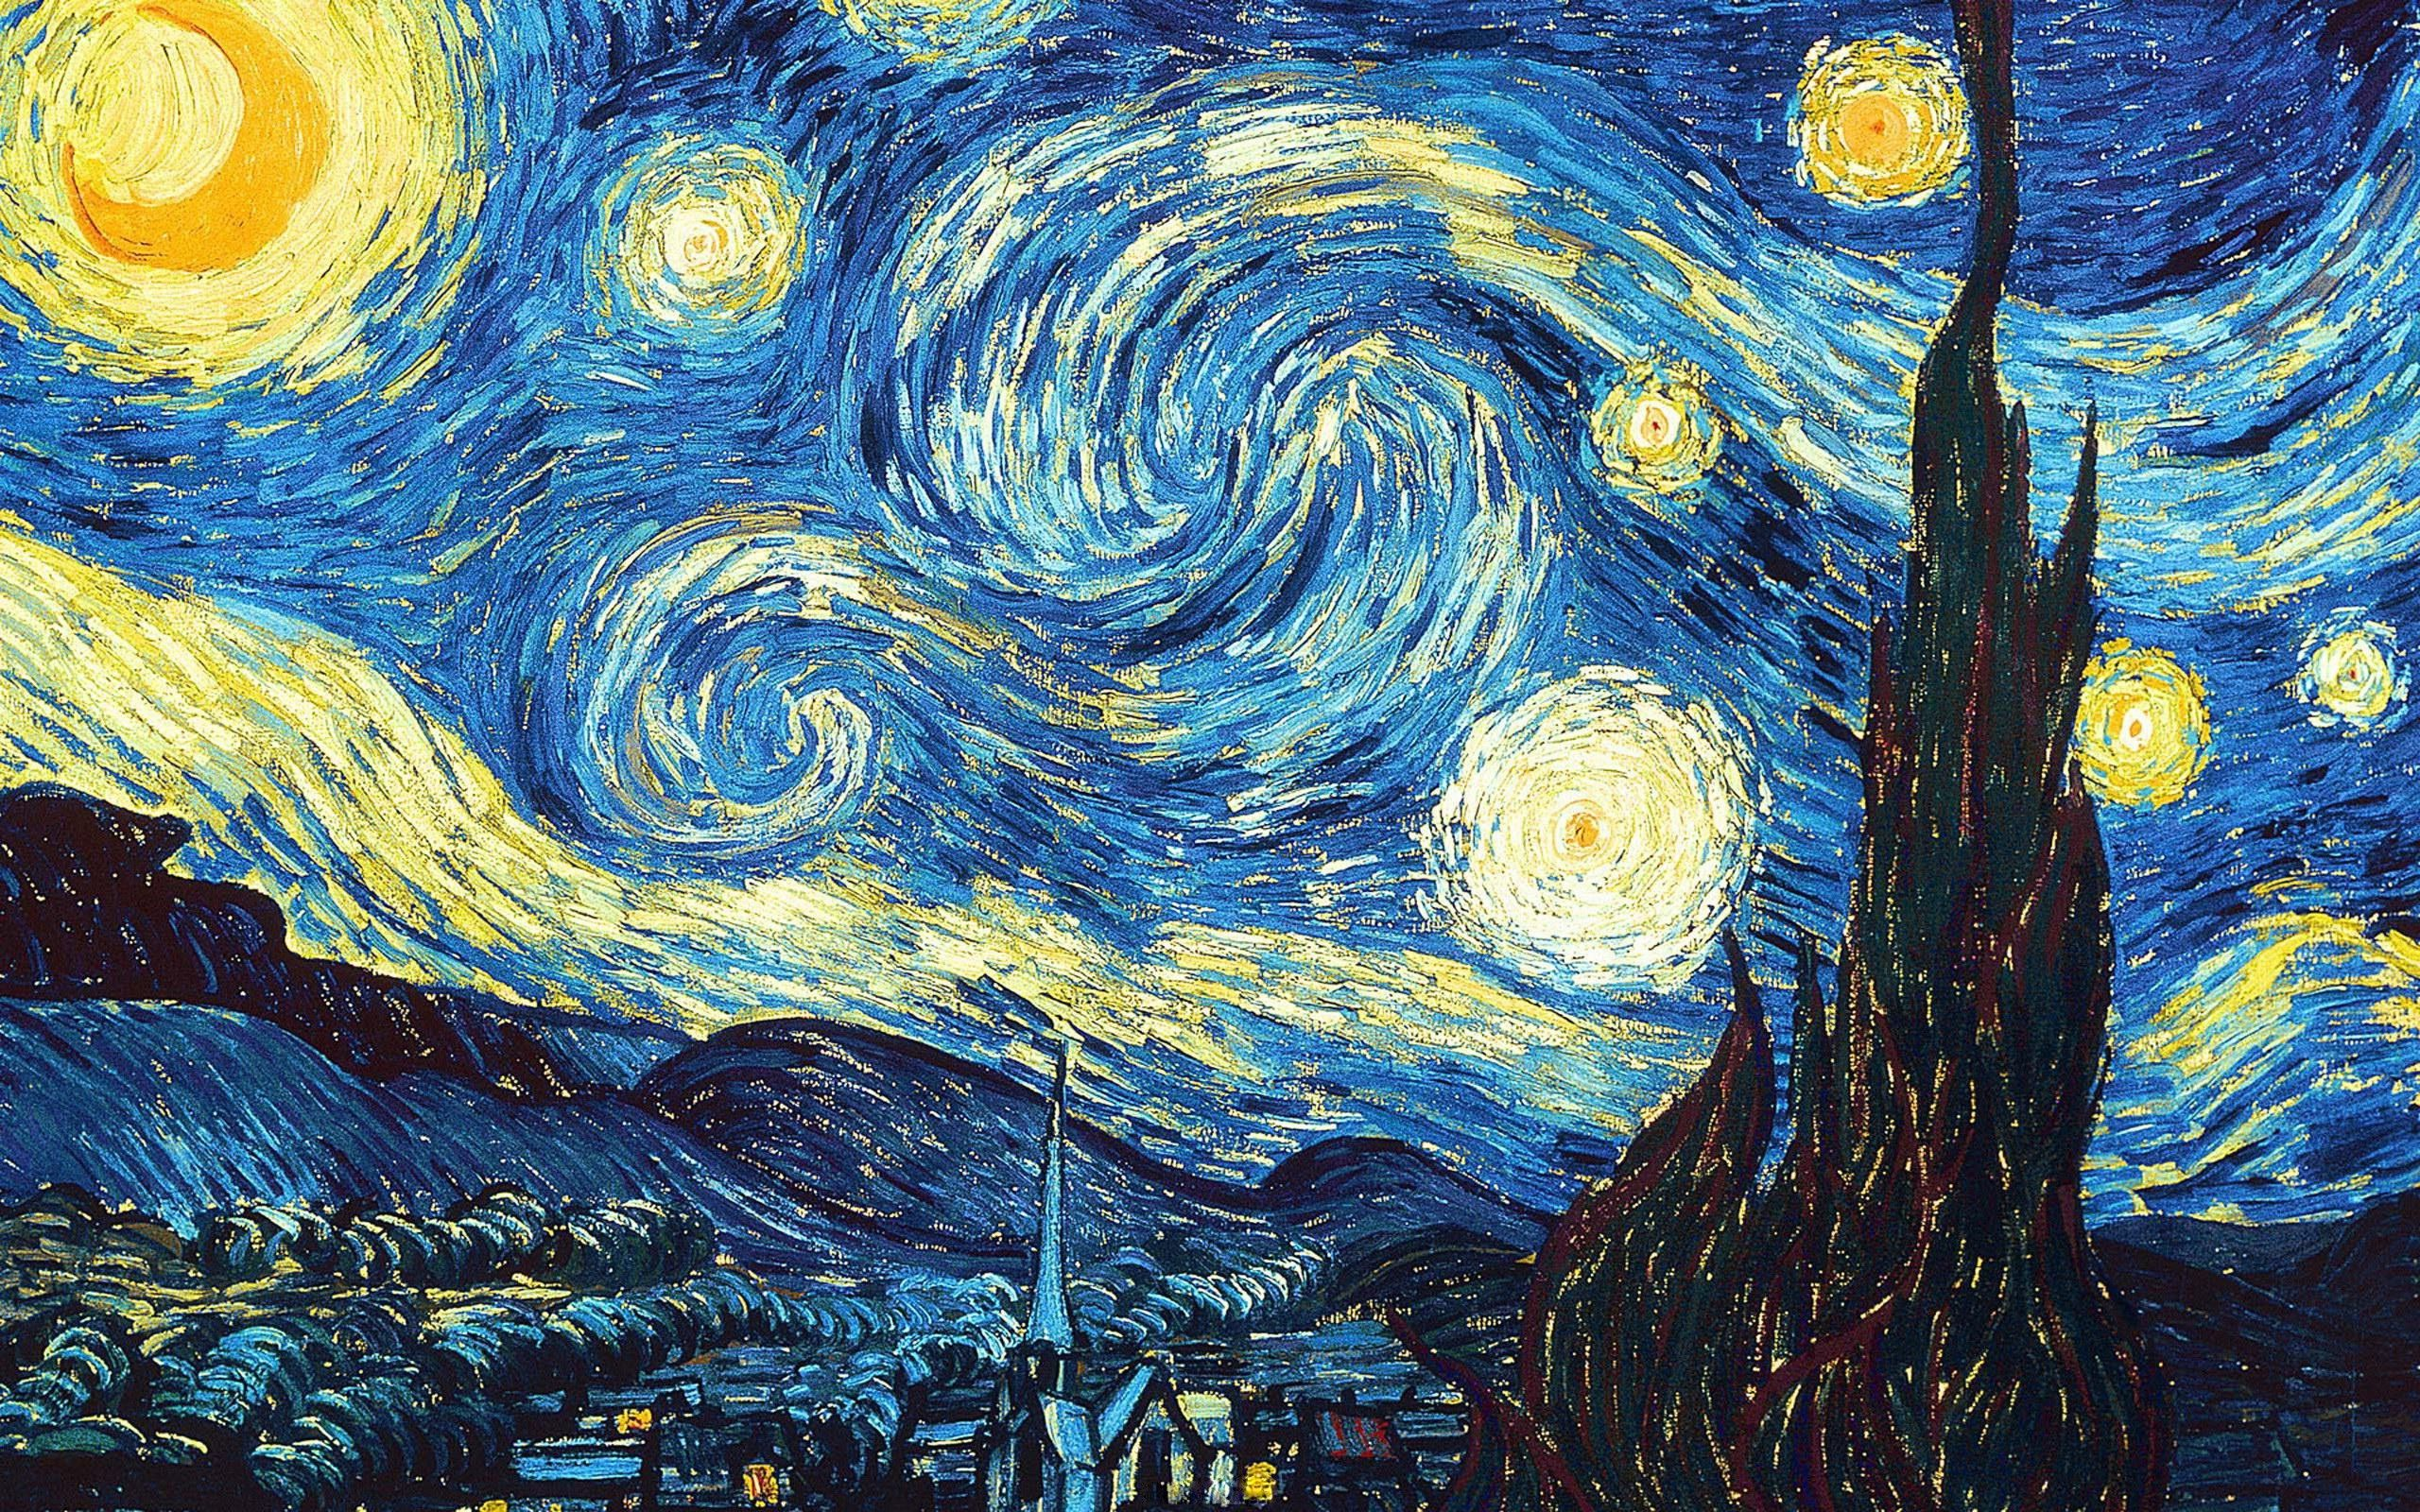 Download Free HD Classy Backgrounds | HD Wallpapers | Pinterest | Classy, Van gogh and Fantasy art